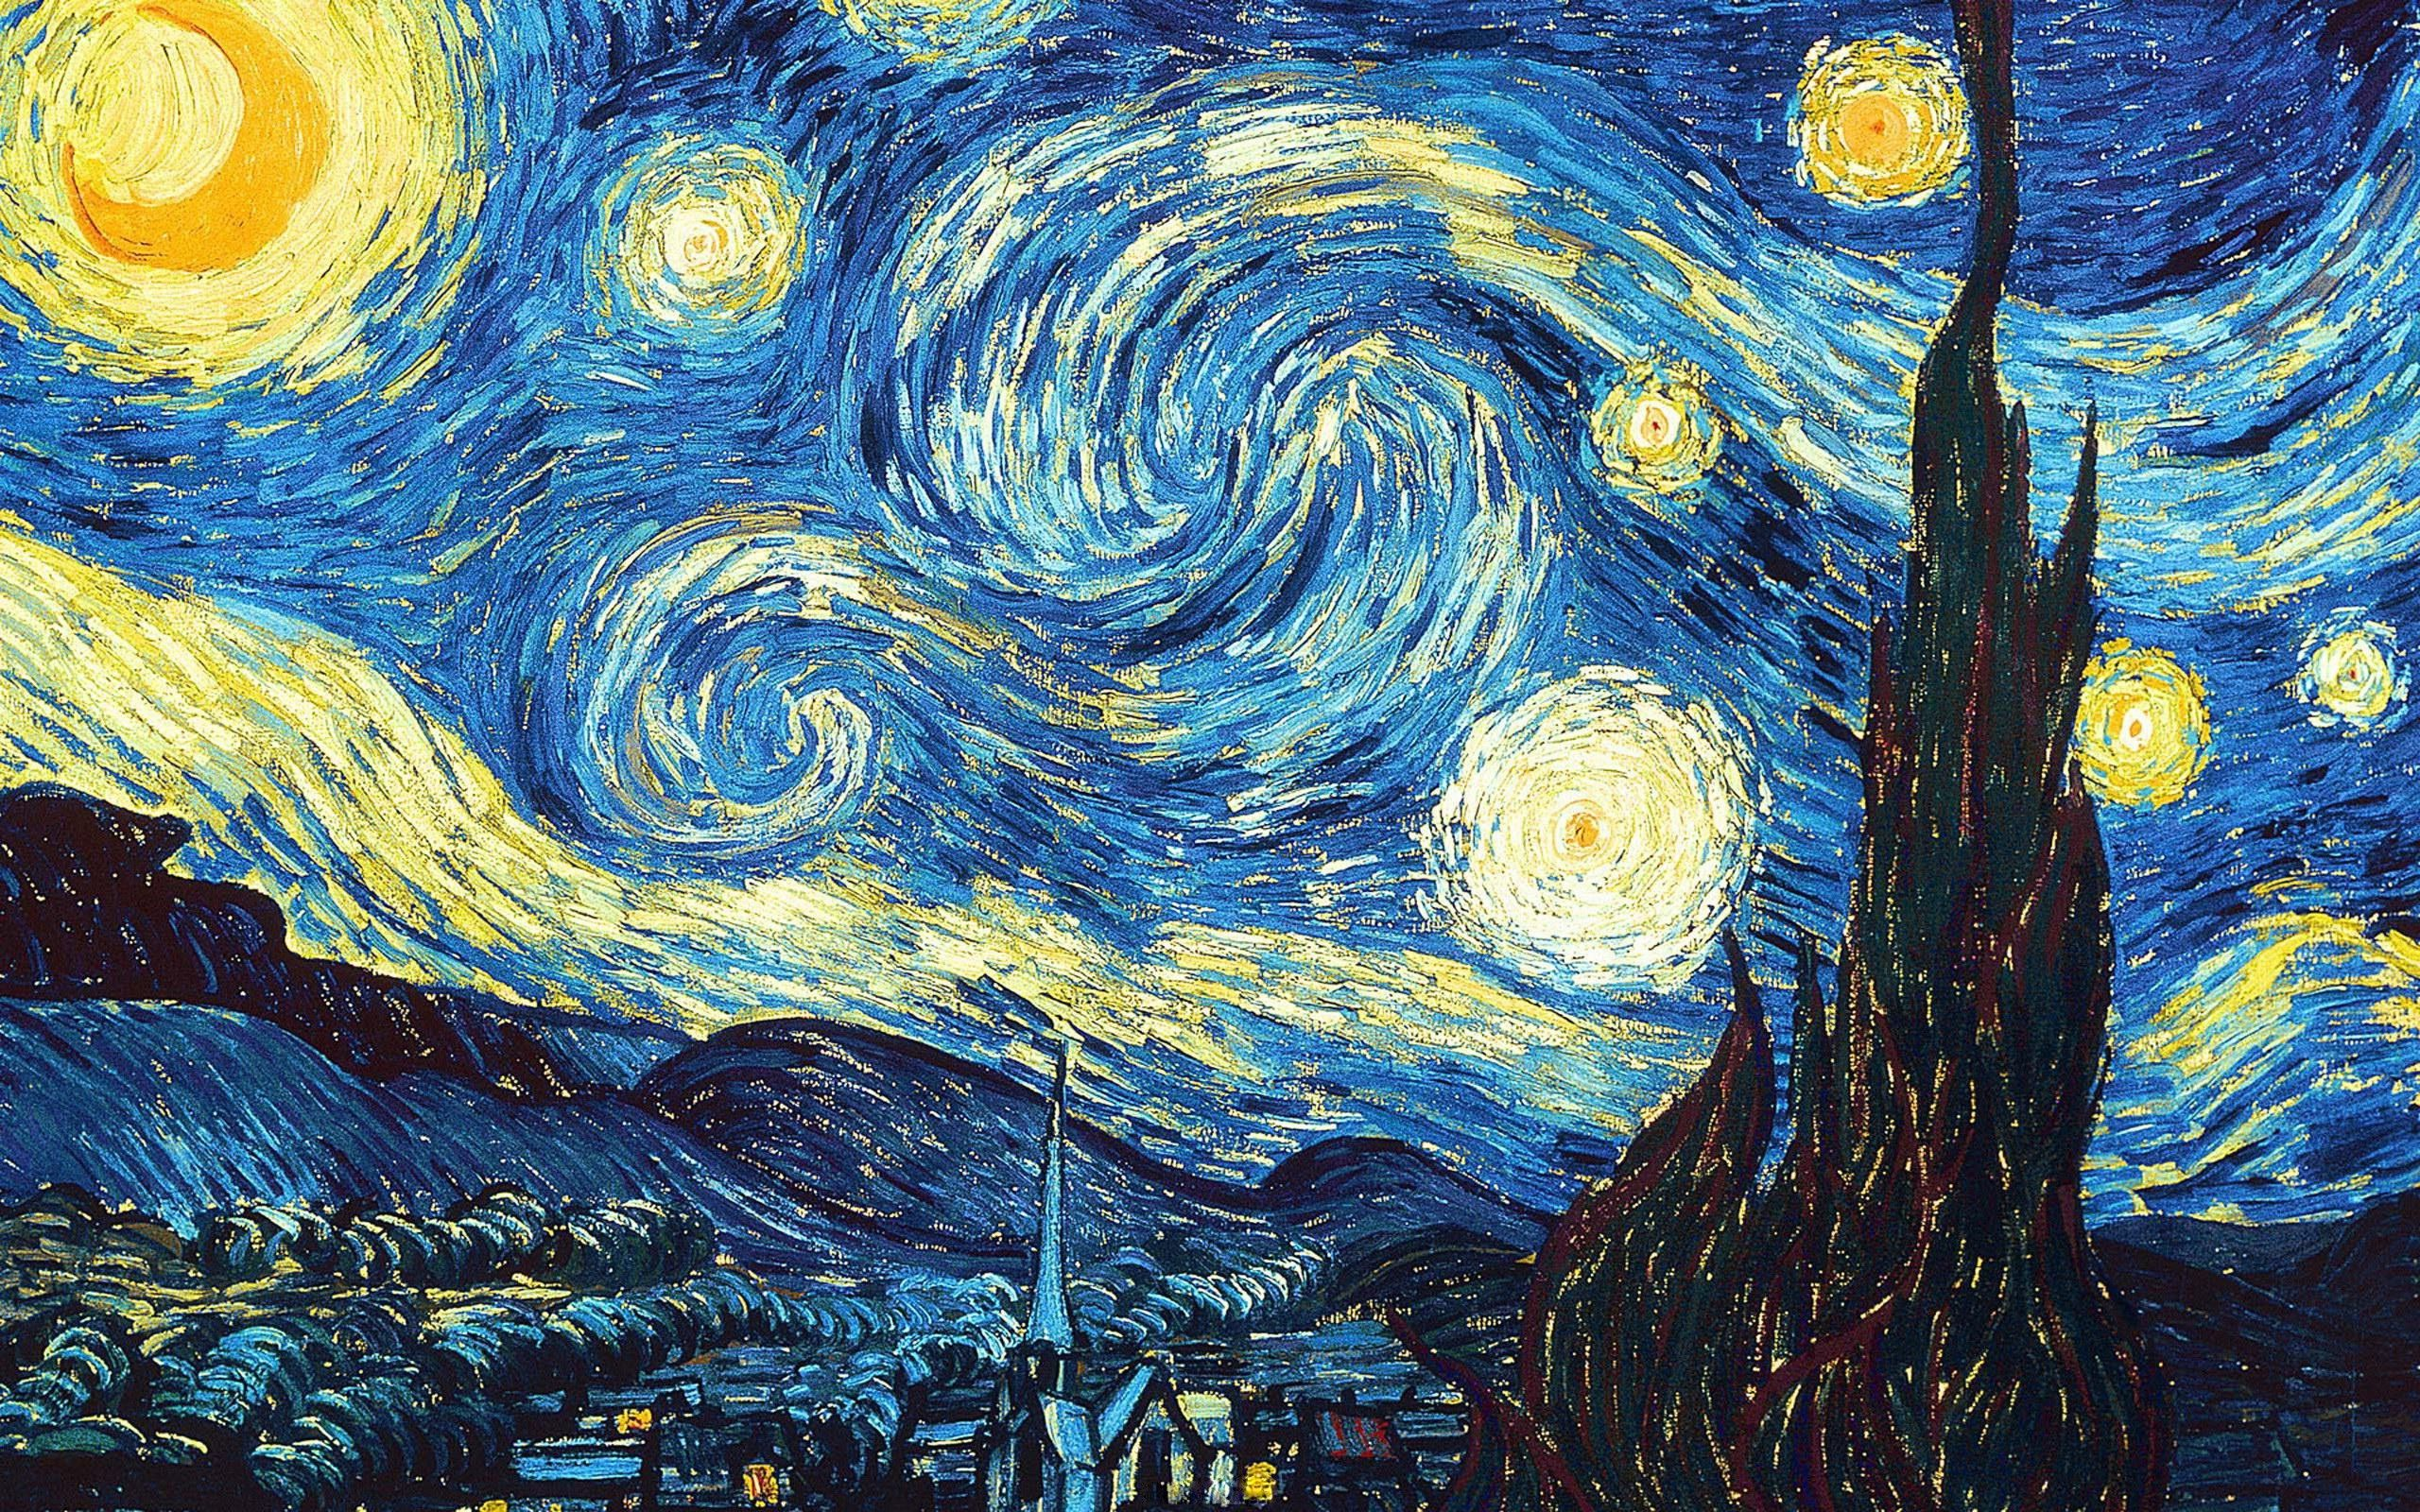 Download Free HD Classy Backgrounds | HD Wallpapers | Pinterest | Classy, Van gogh and Fantasy art